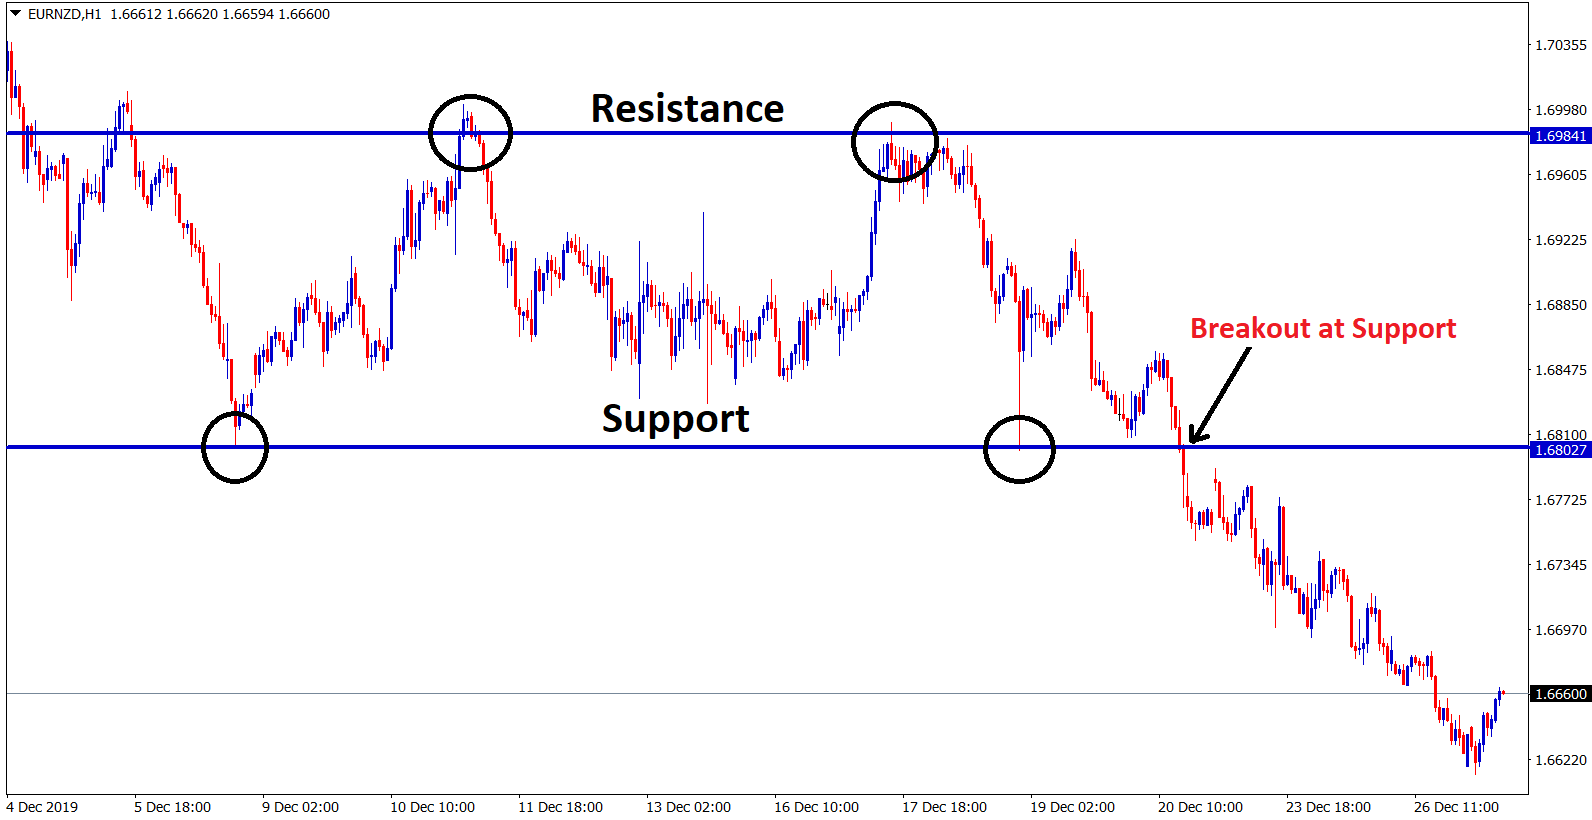 Breakout at support in eurnzd